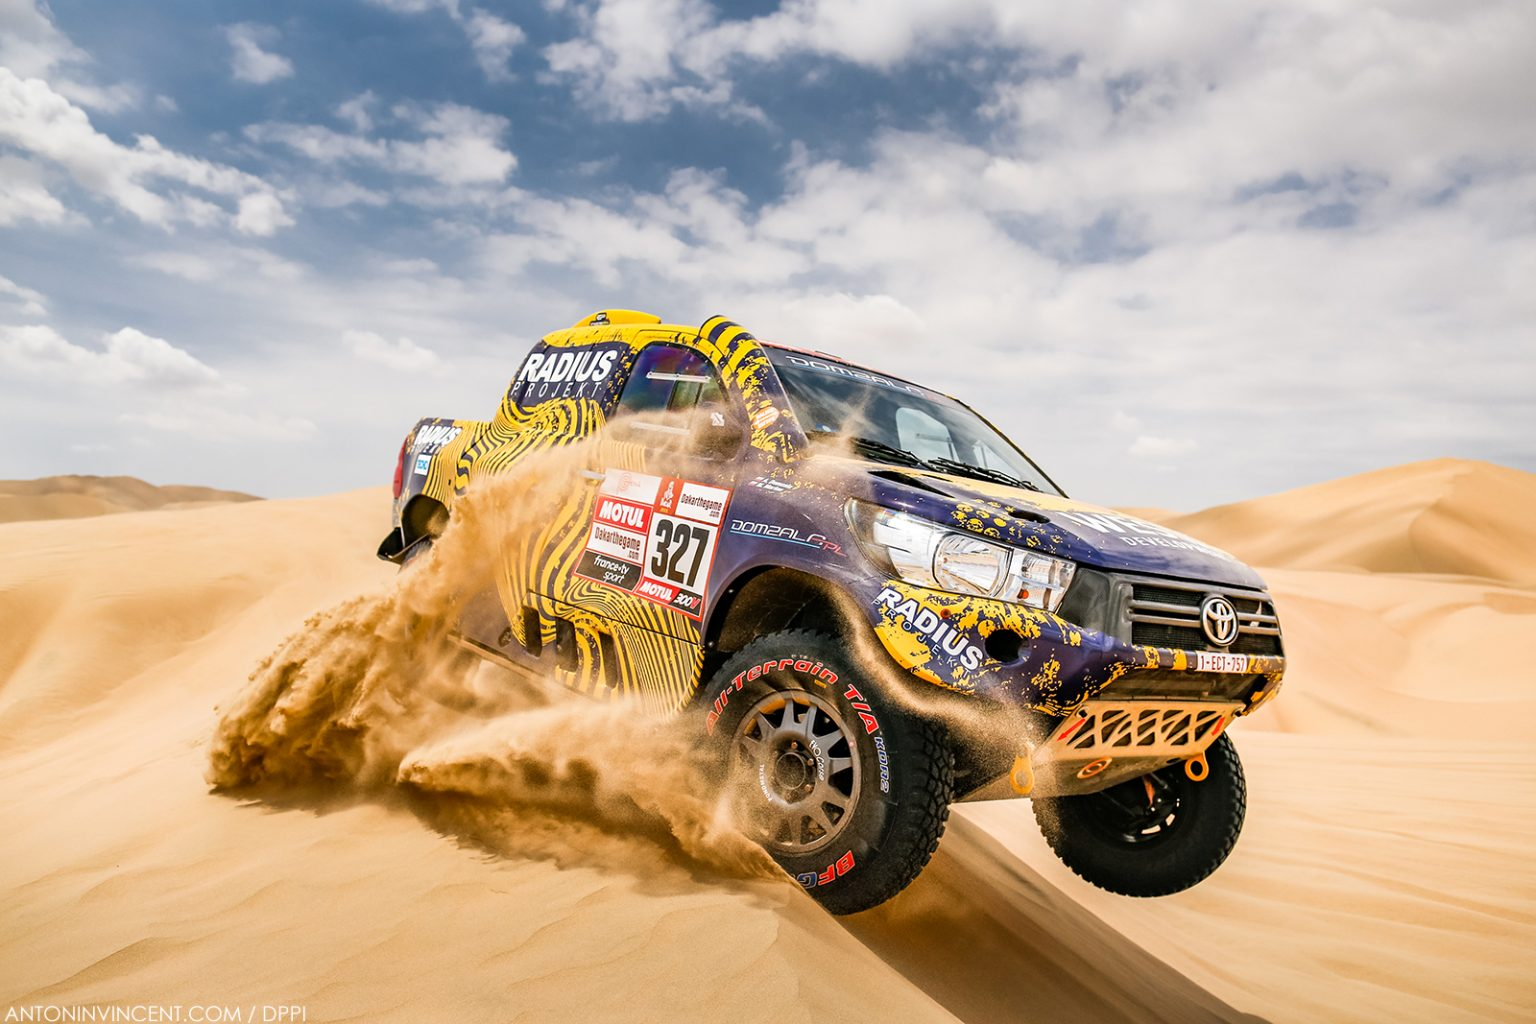 327 DOMZALA Aron (pol), MARTON Maciej (pol), Toyota, Toyota Overdrive, Group T1, Class 2, Auto, action during the Dakar 2019, Stage 1 Lima to Pisco, peru, on january 7 - Photo Antonin Vincent / DPPI